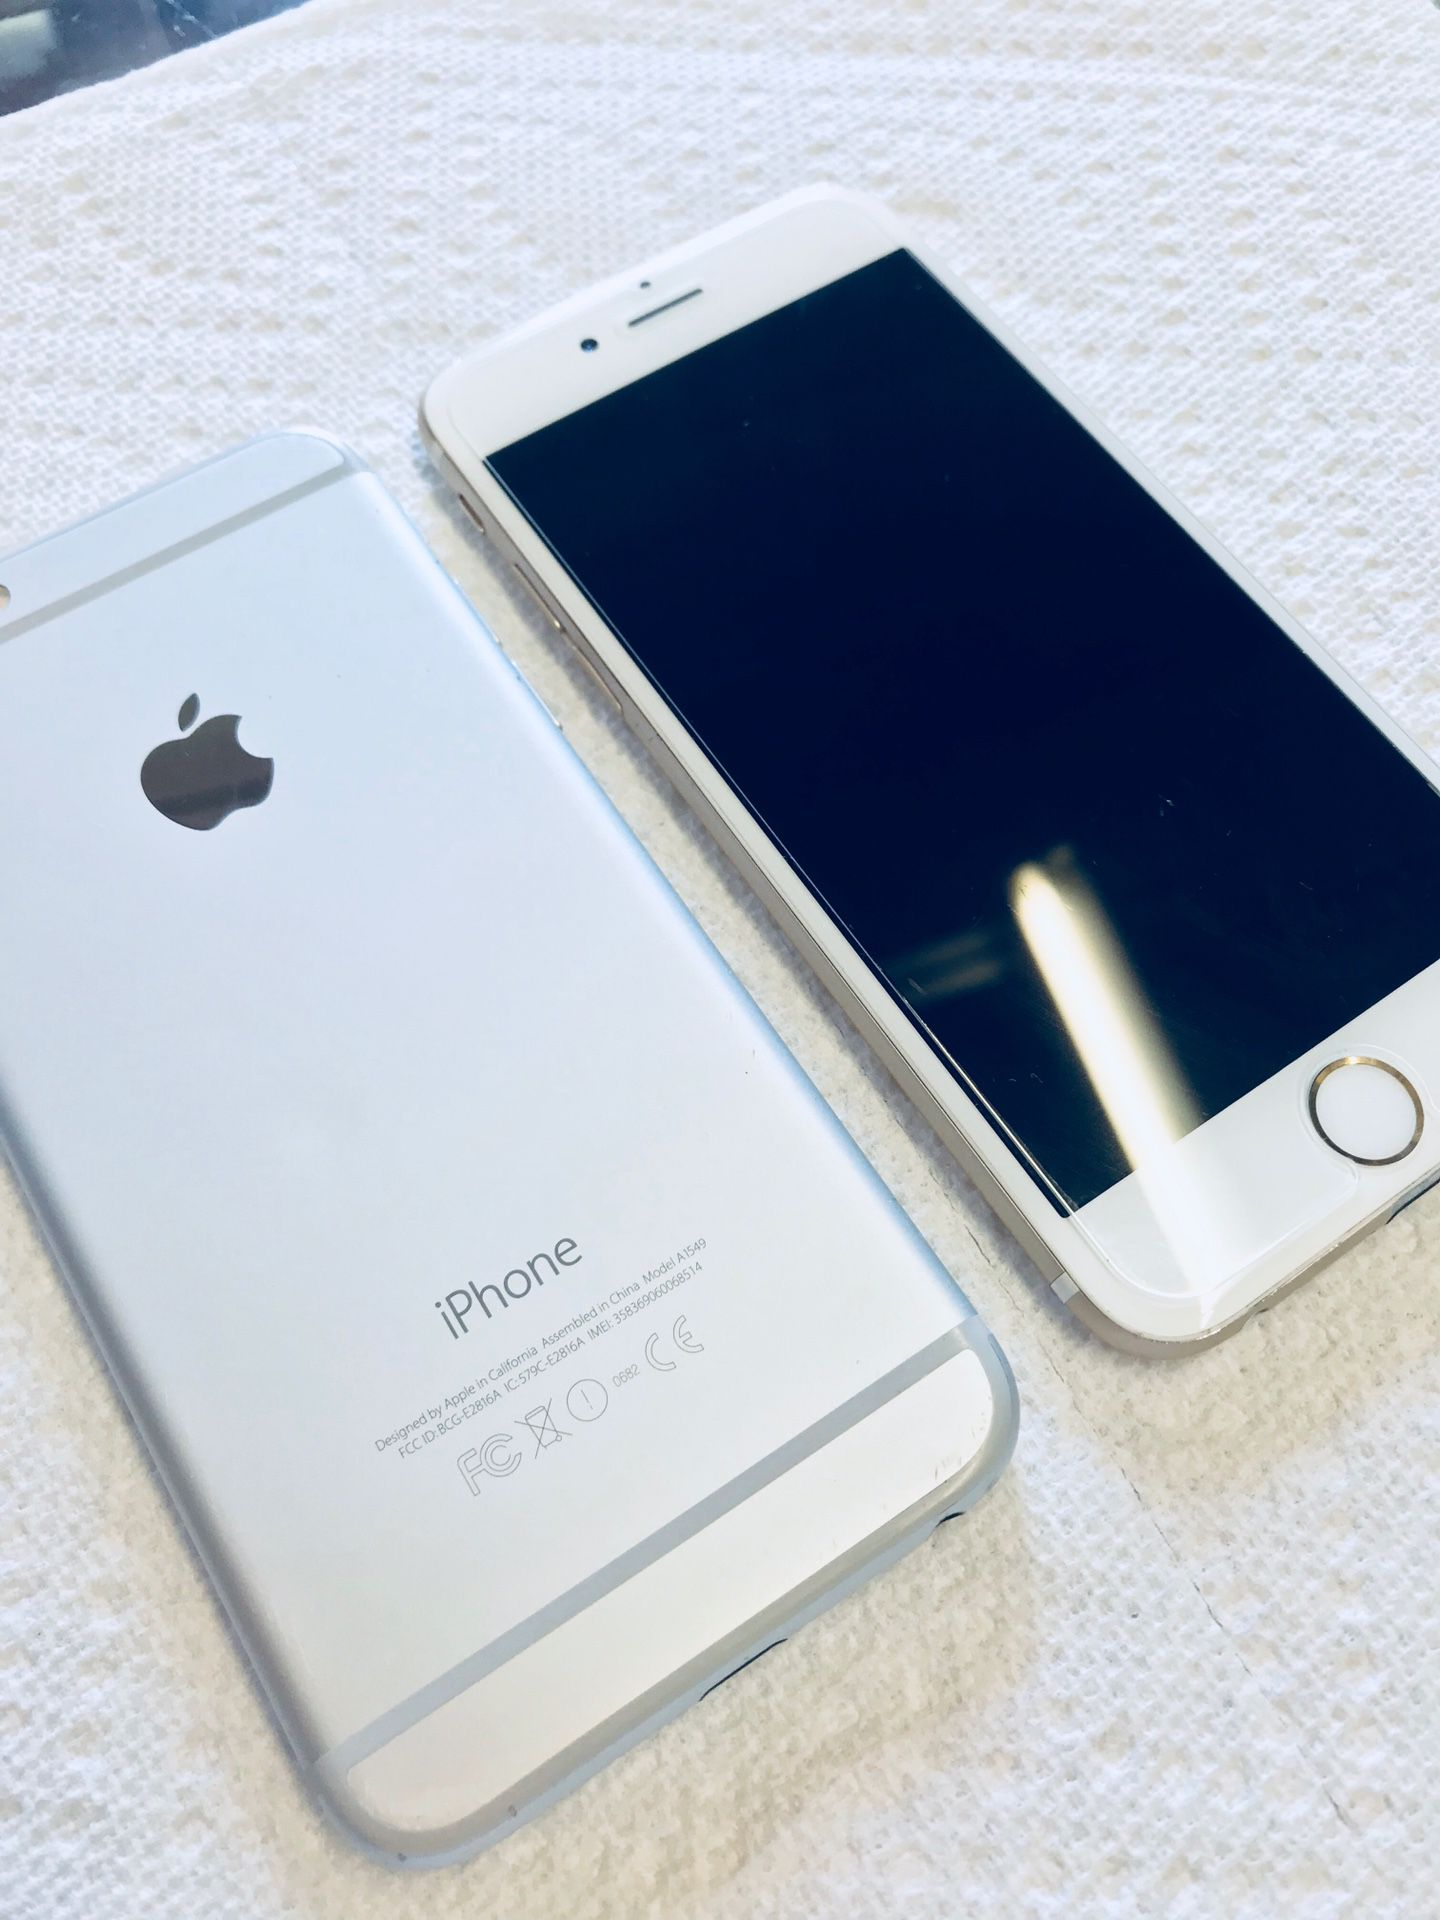 iPhone 6 unlocked for any service